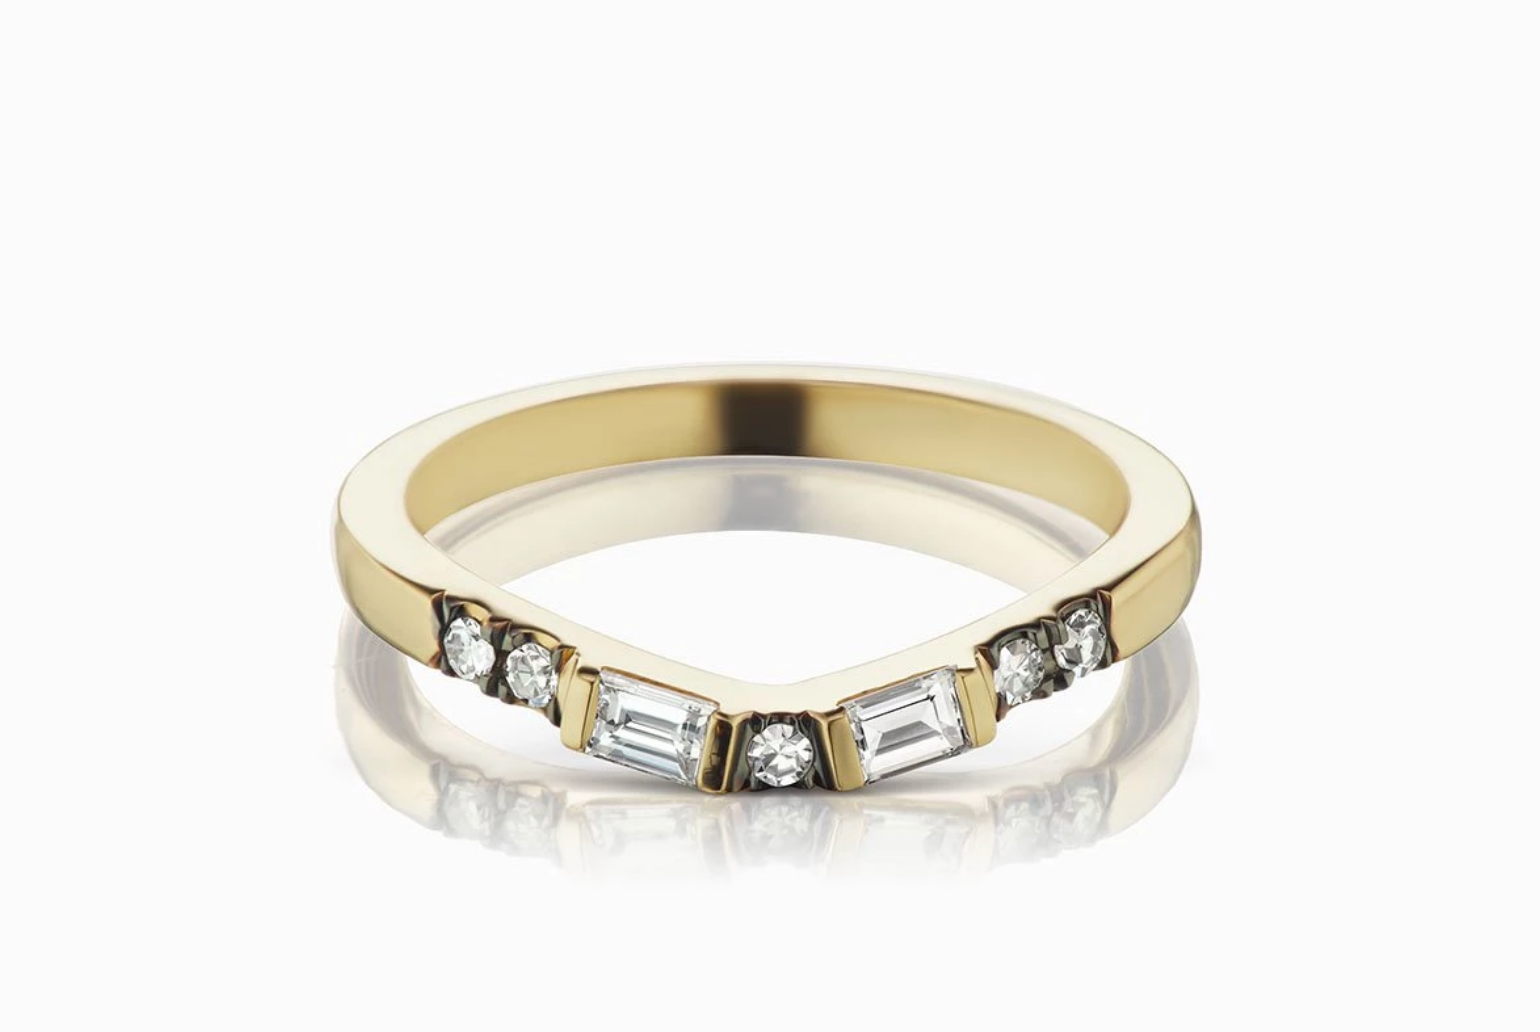 ManiaMania 14K Yellow Gold Diamond Vega Band